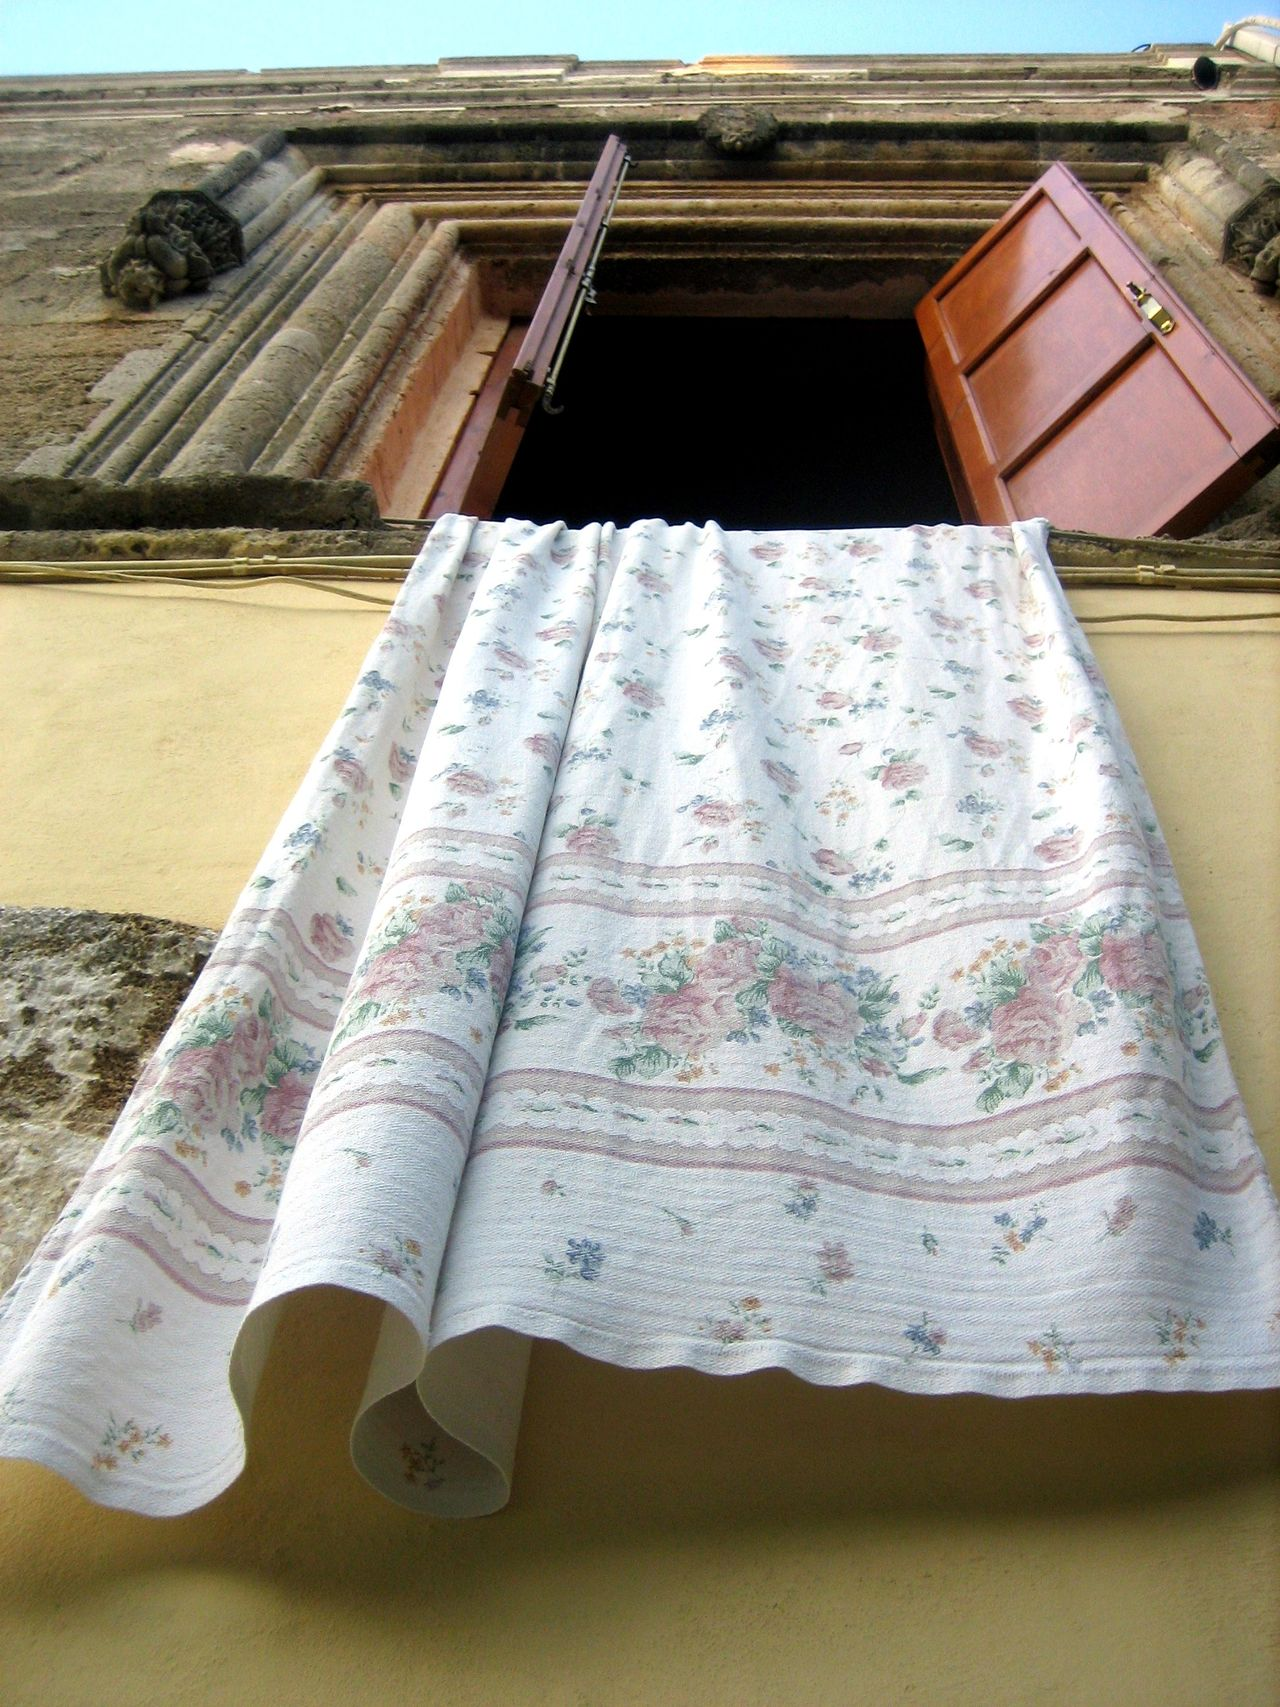 Daily routine Blinds Greece Open Window Rhodes Rhodos Tablecloth Typical Wall Window